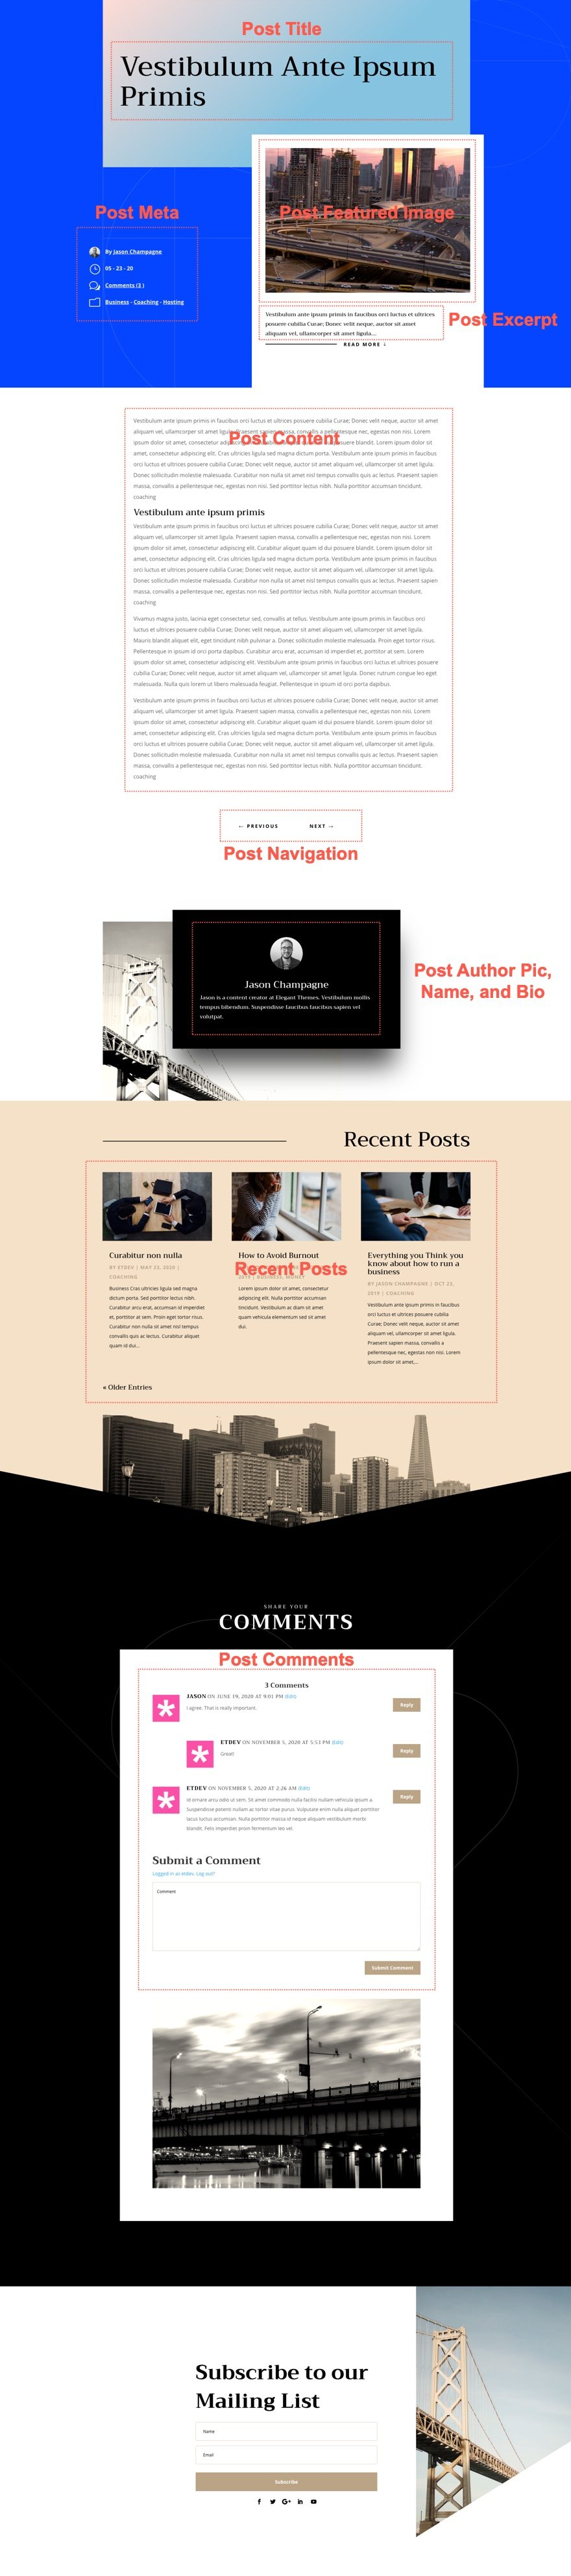 download-a-free-blog-post-template-for-divis-engineering-firm-layout-pack-8 Download a FREE Blog Post Template for Divi's Engineering Firm Layout Pack